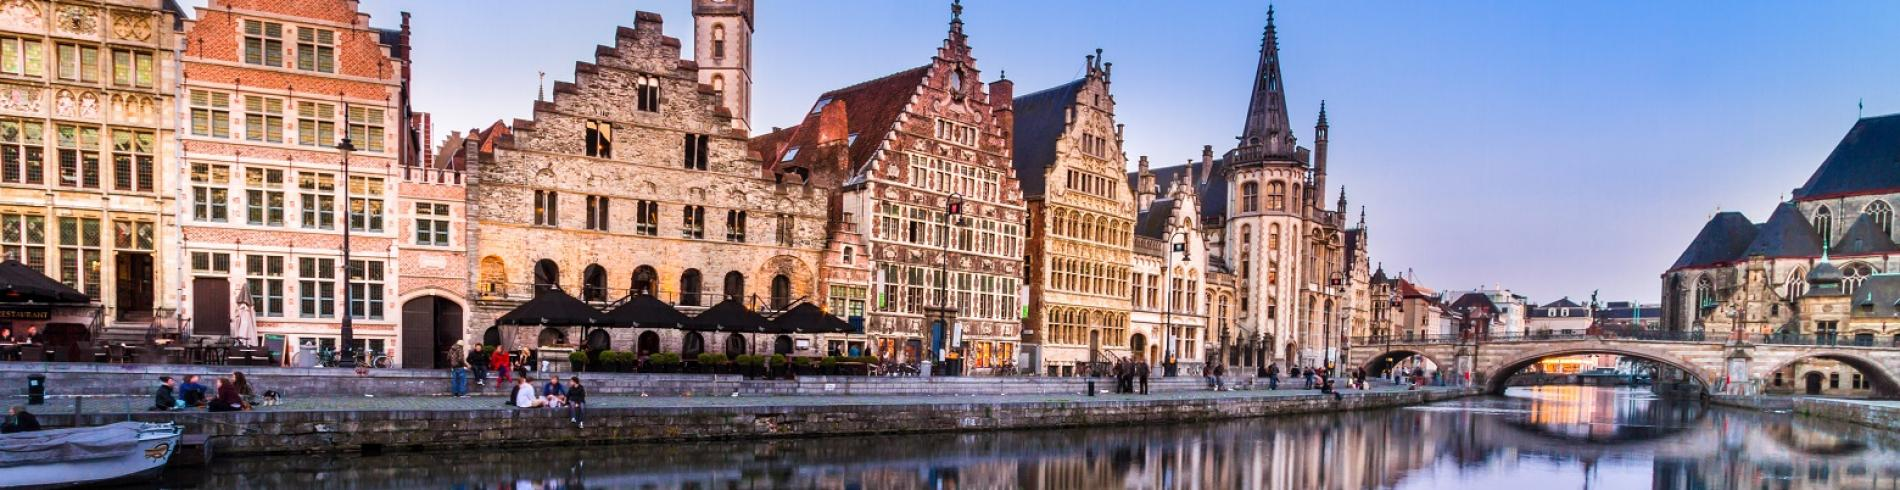 The River Leie in Ghent